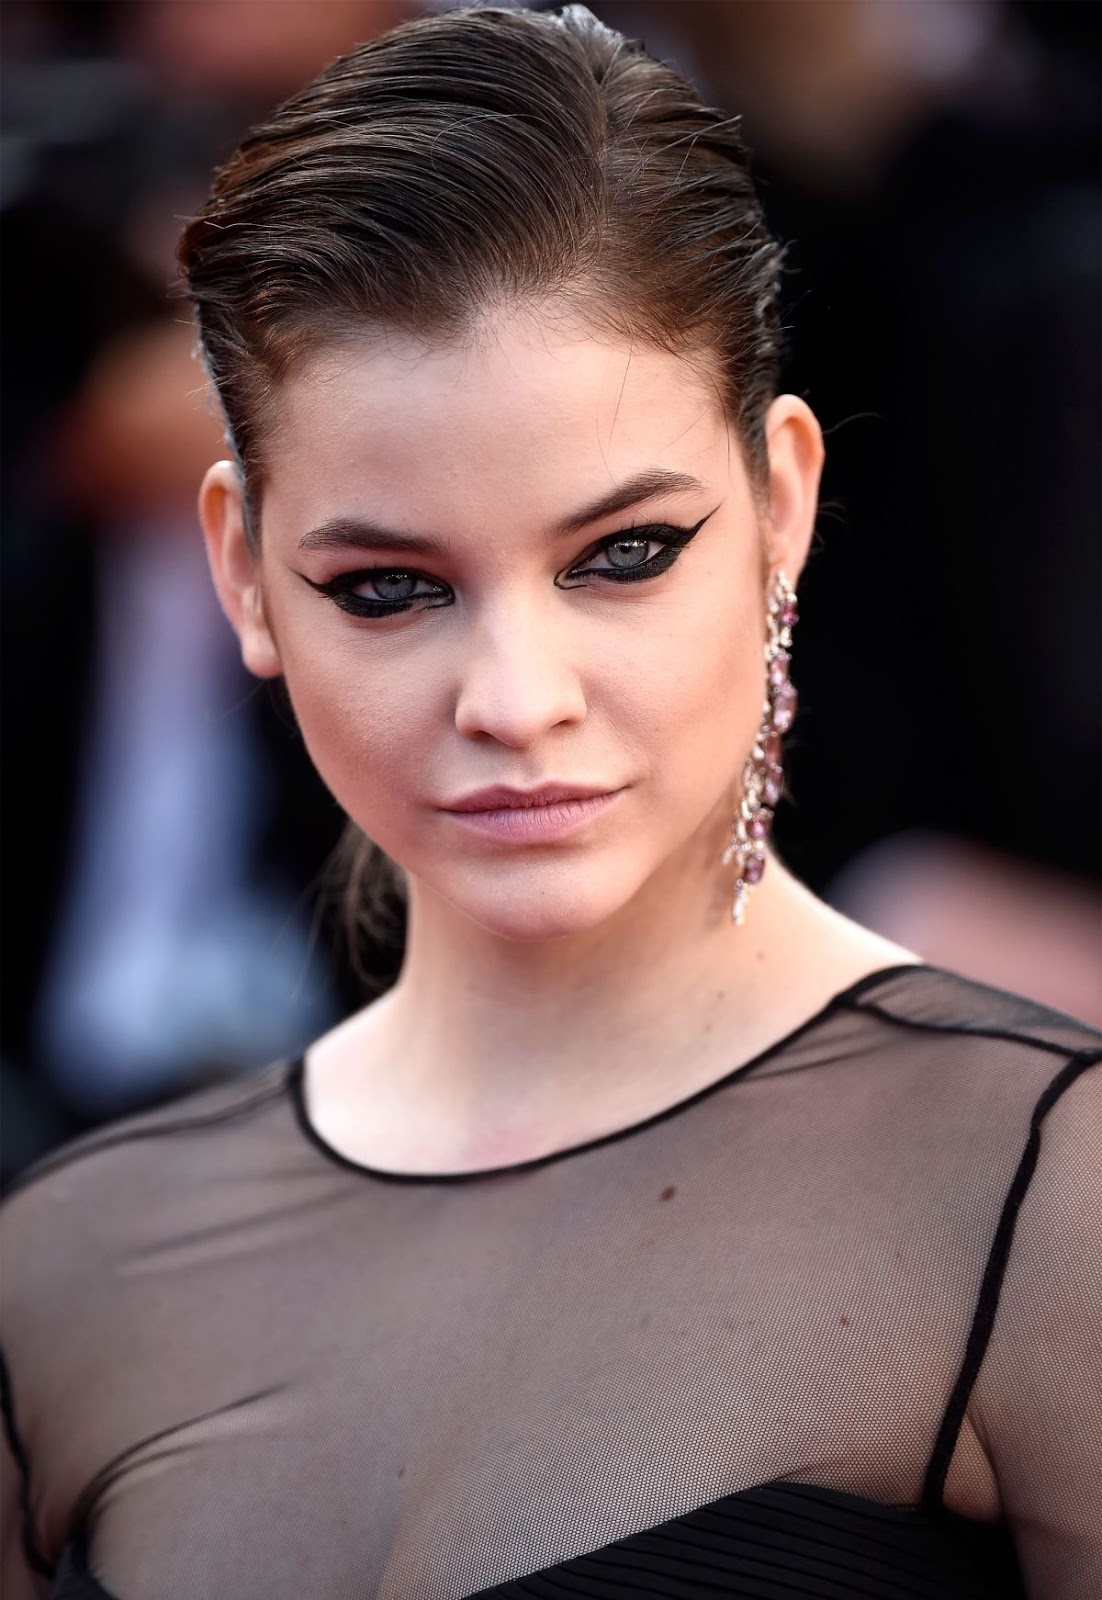 Full HQ Photo of Barbara Palvin in Black Dress At Youth Premiere At Cannes Film Festival